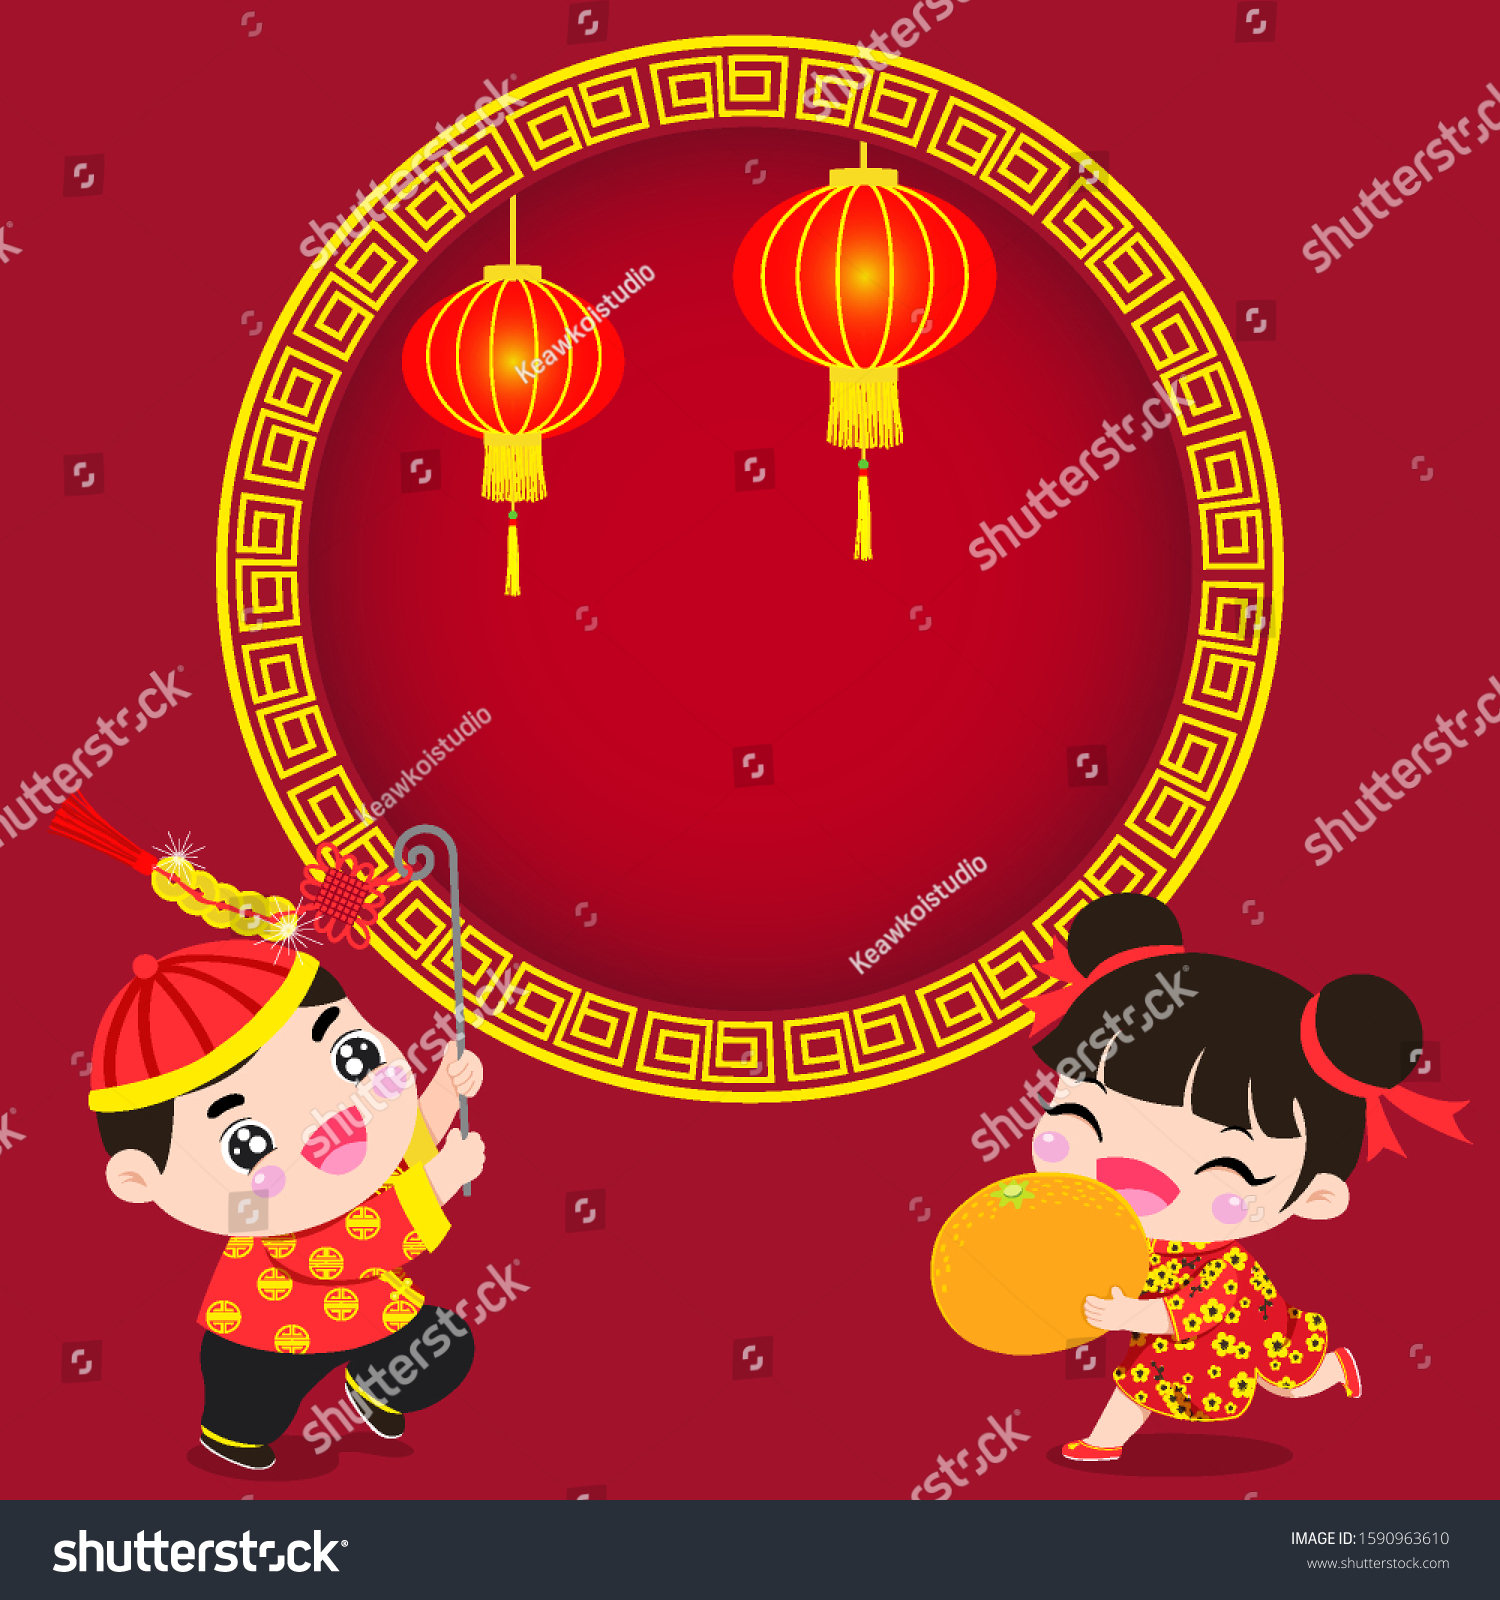 Illustration Vector Cheerful Chinese Kids Golden Stock Vector Royalty Free 1590963610